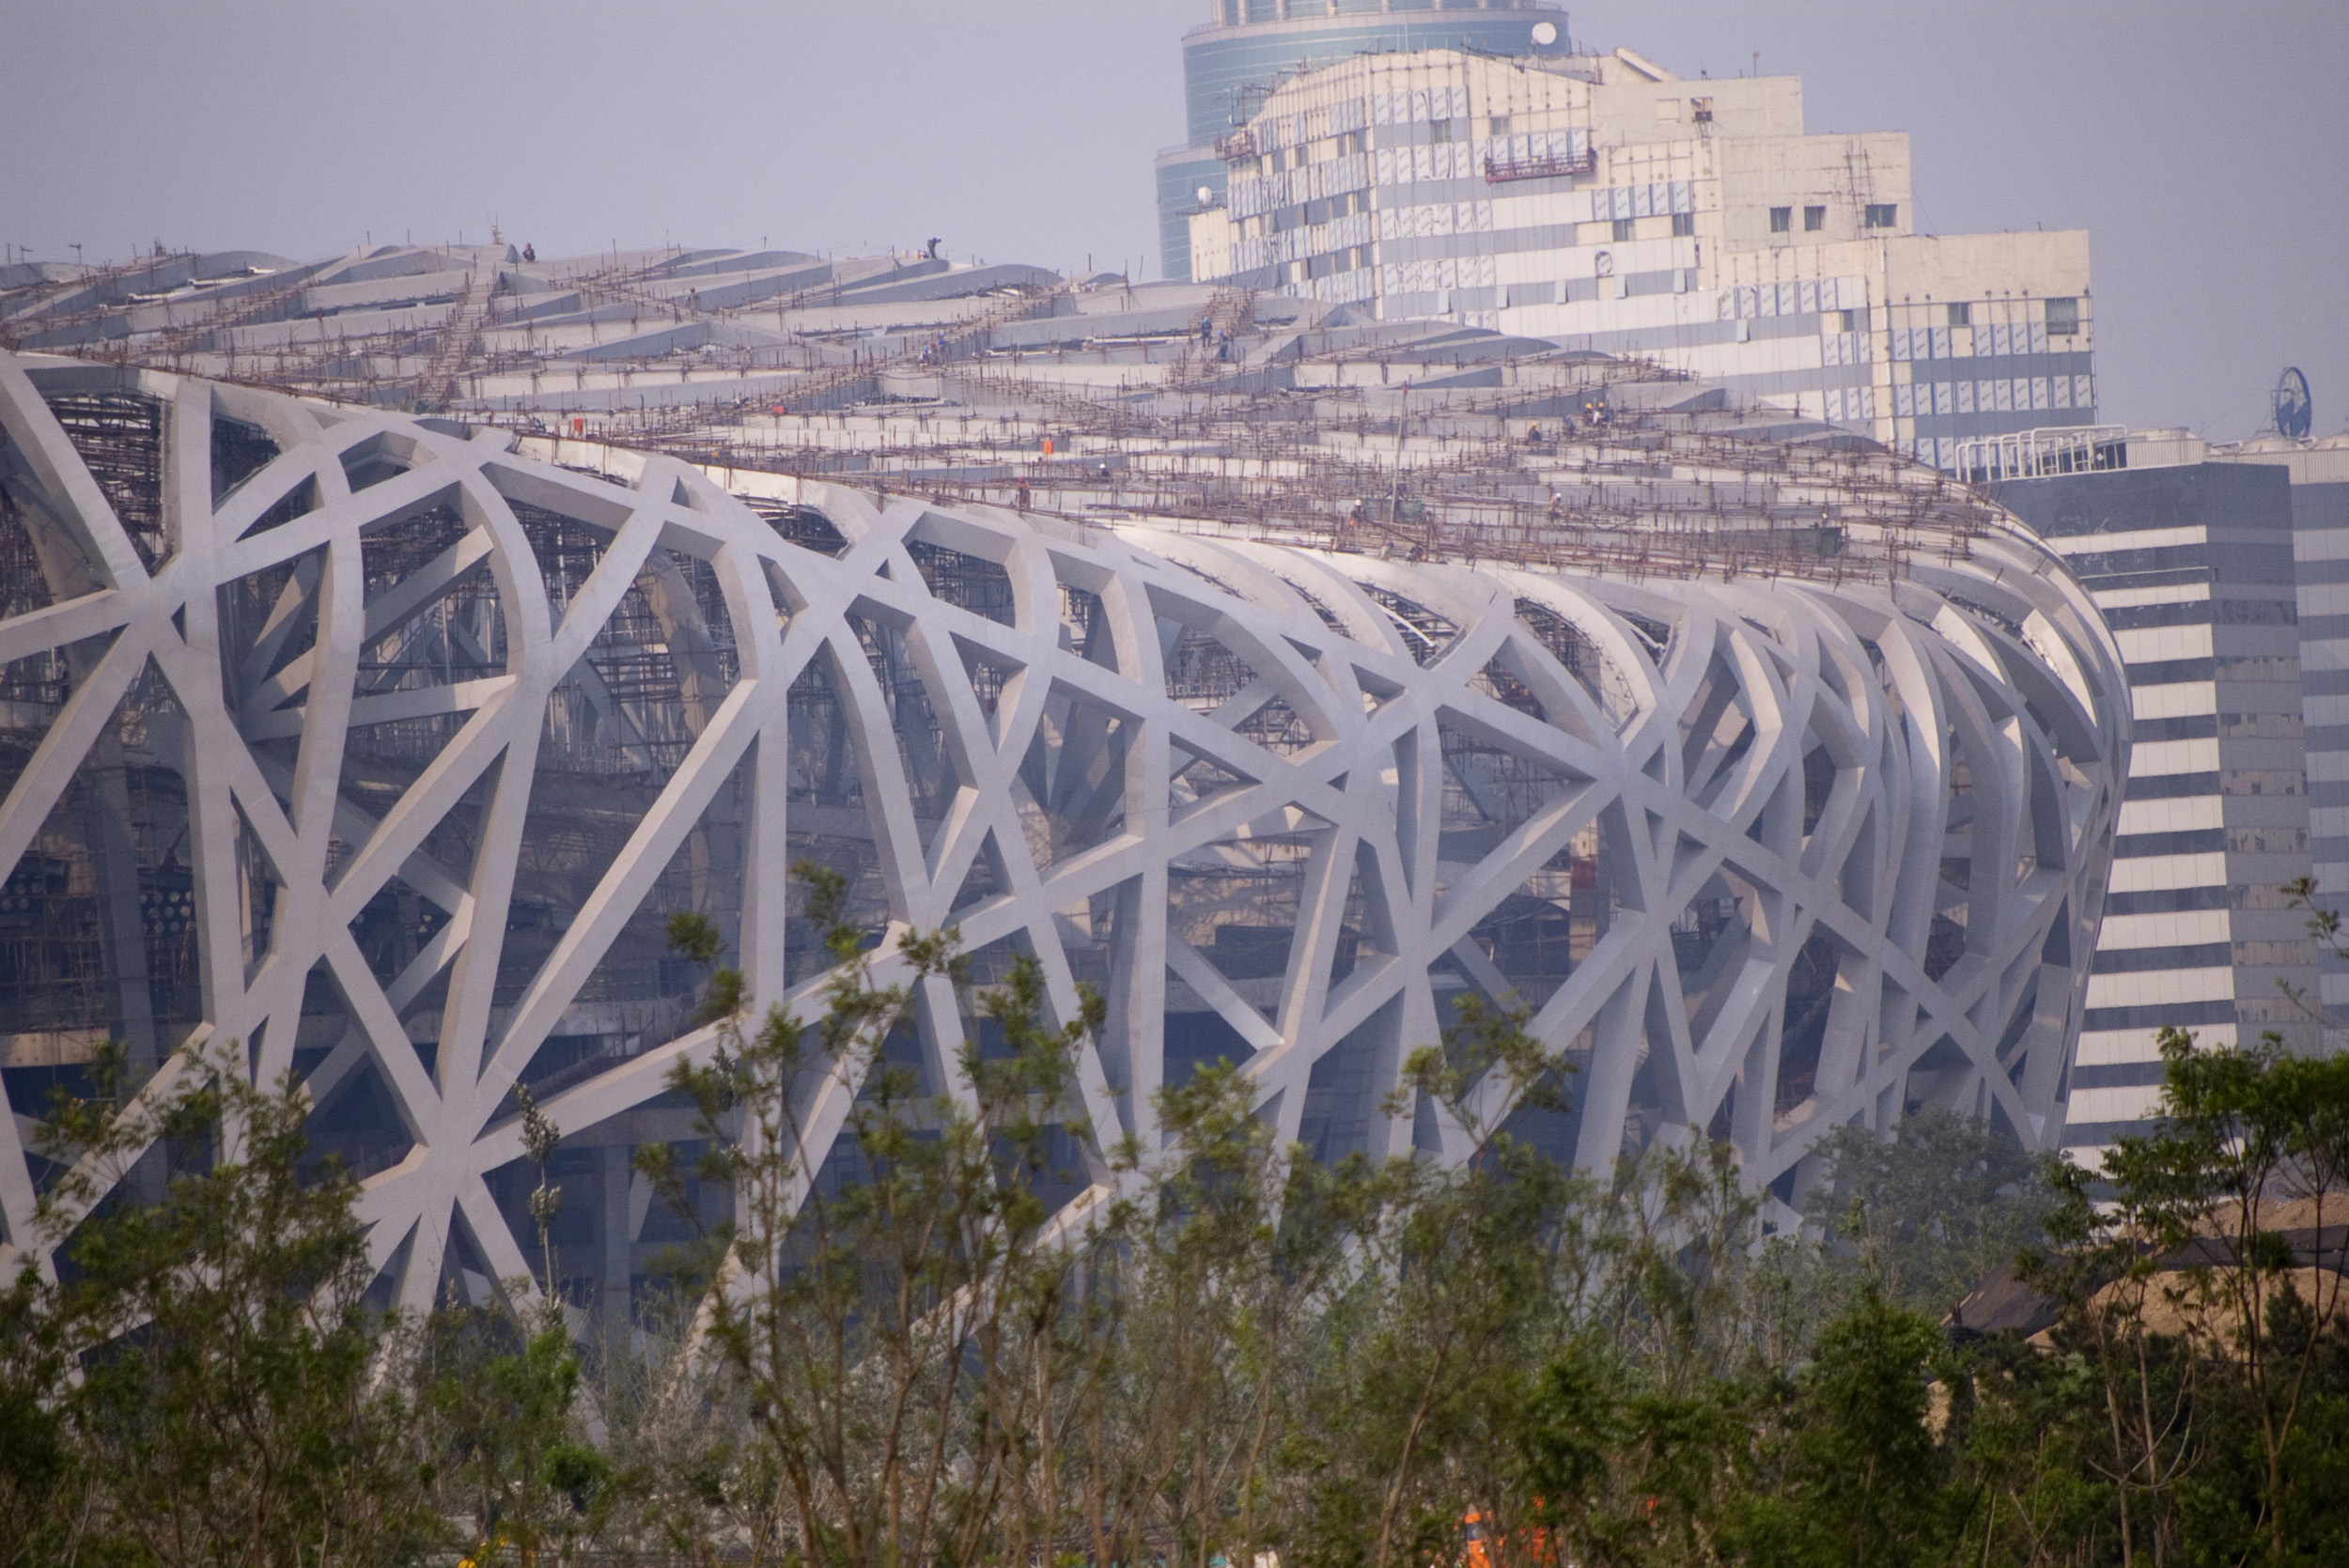 Exterior view of the Birds-nest olympic stadium in Beijing China with its intricate structure and landmark design